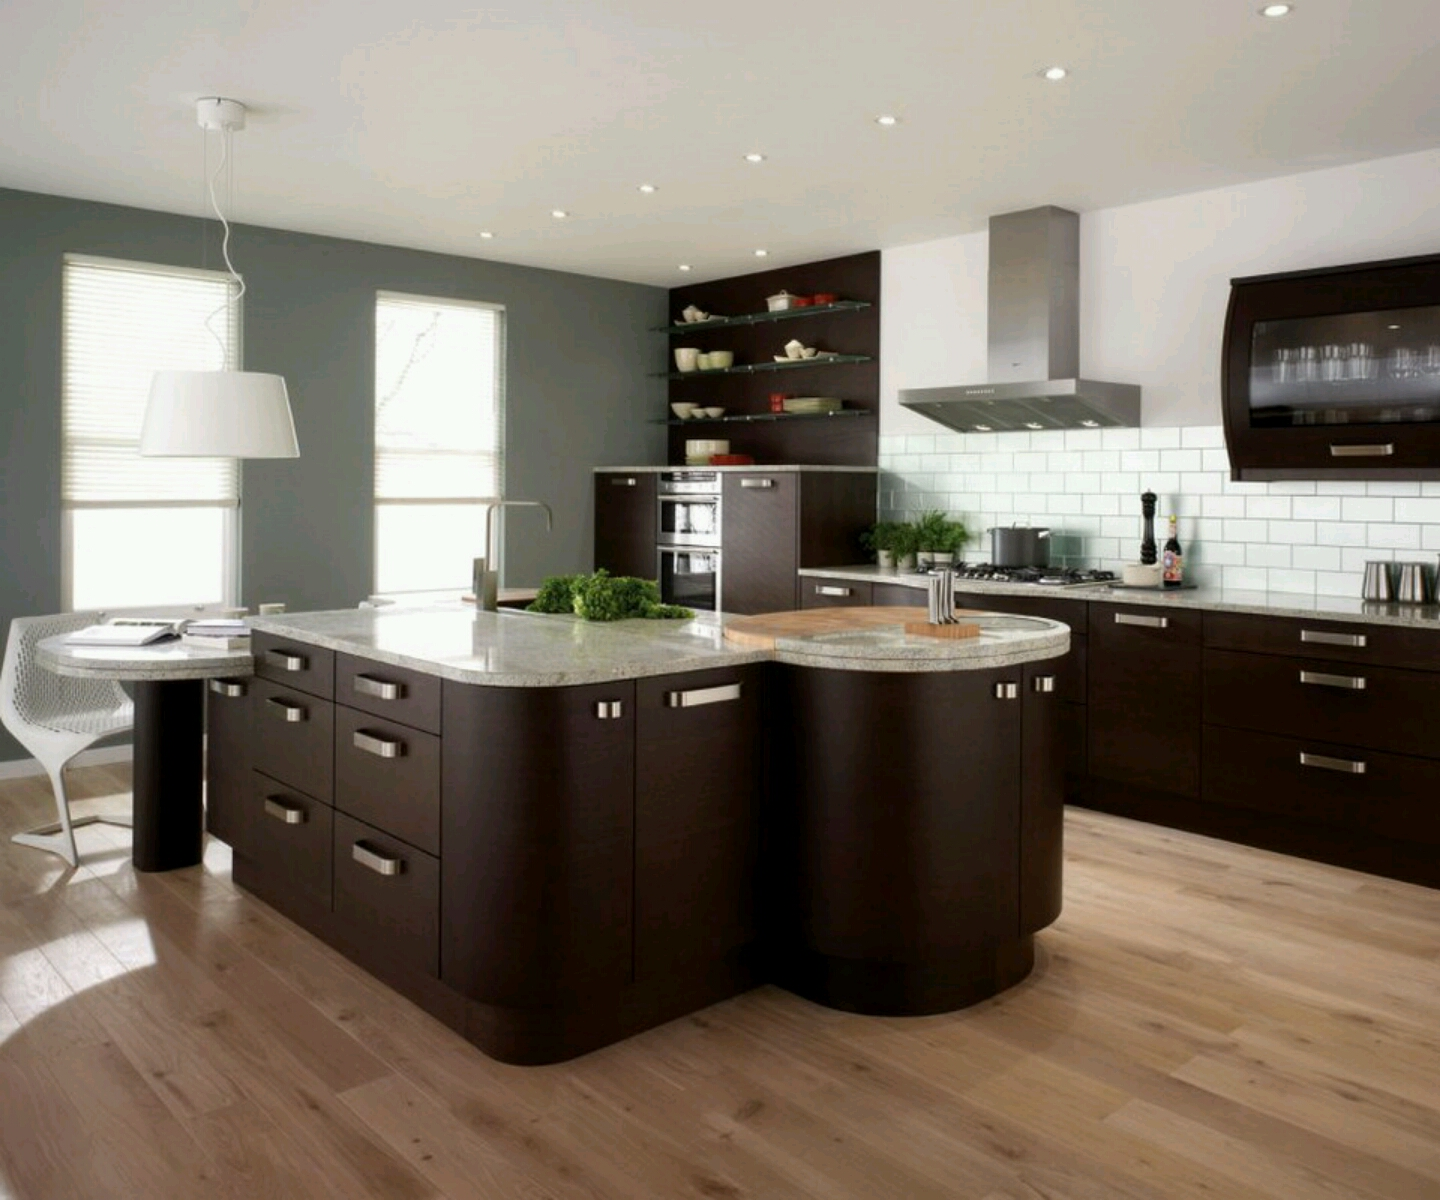 House Decoration Kitchen: New Home Designs Latest.: Modern Home Kitchen Cabinet